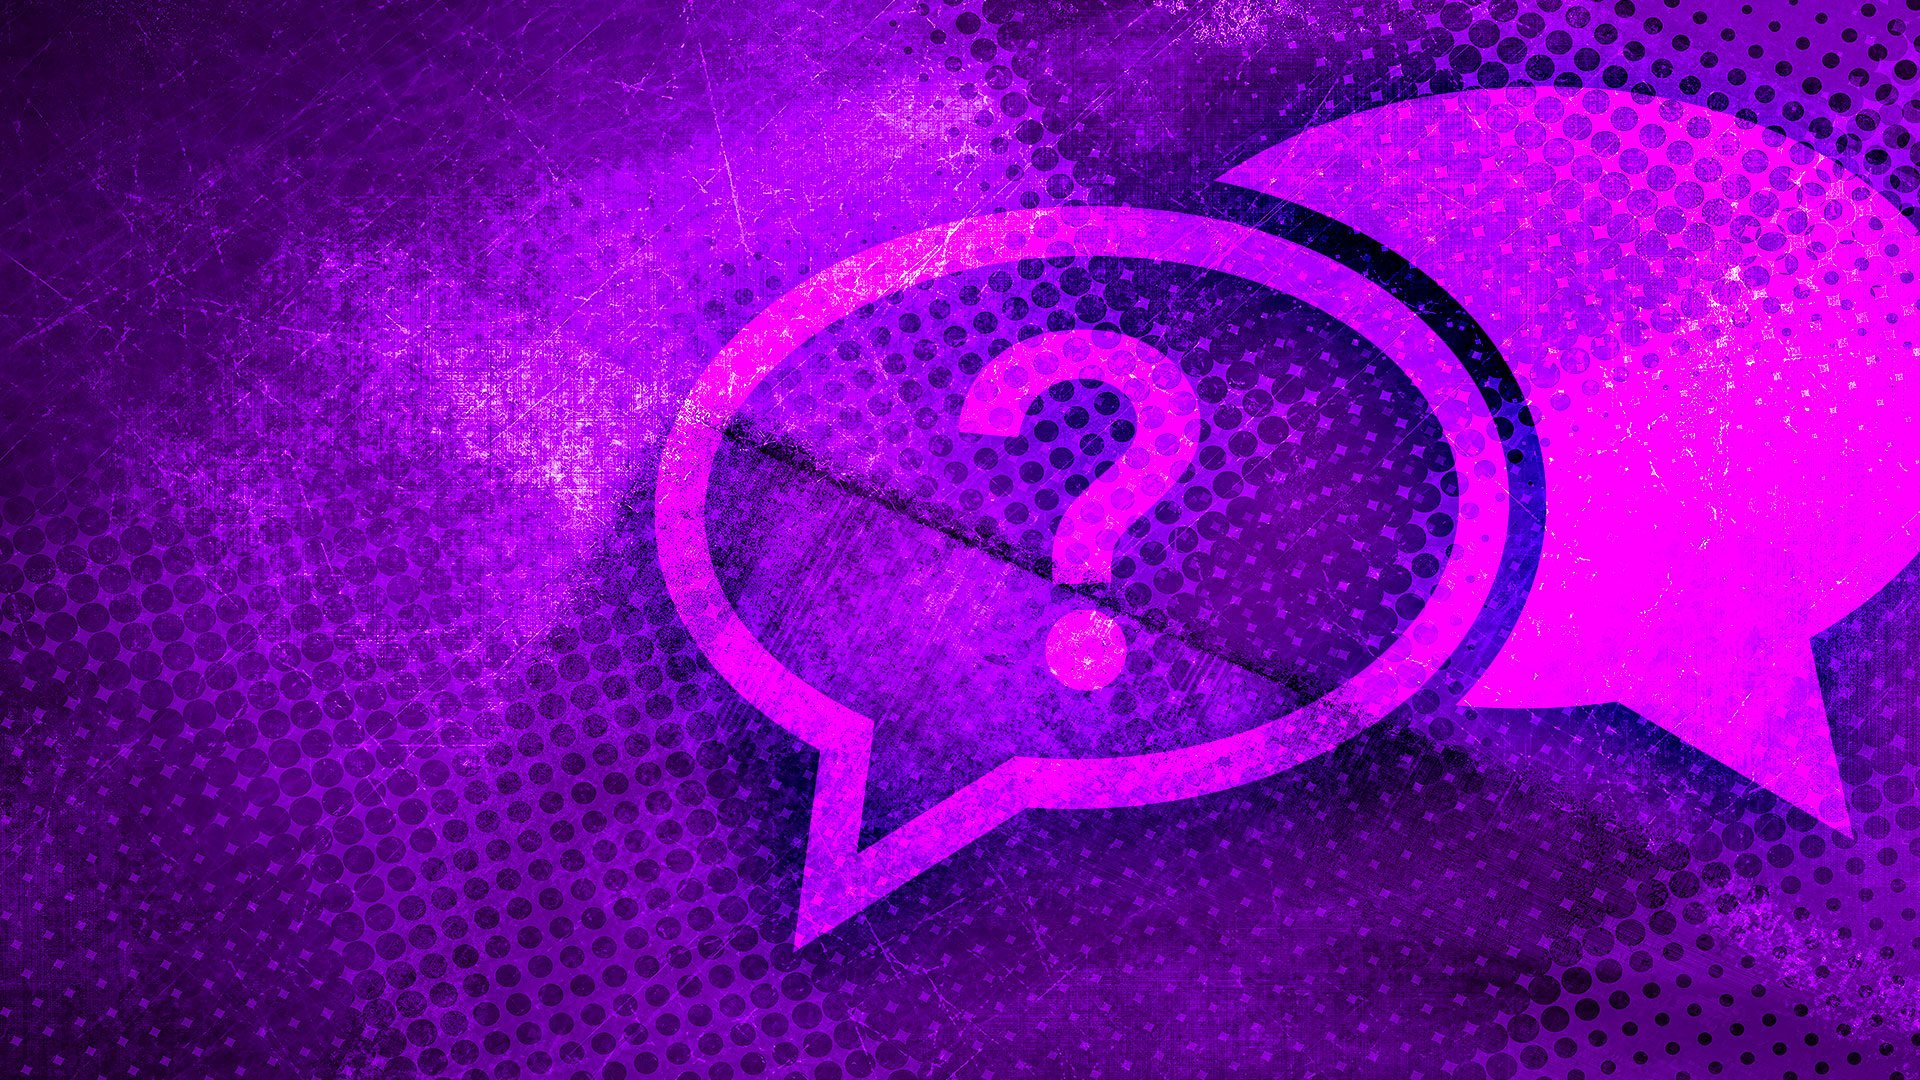 Chat bubble with question marks